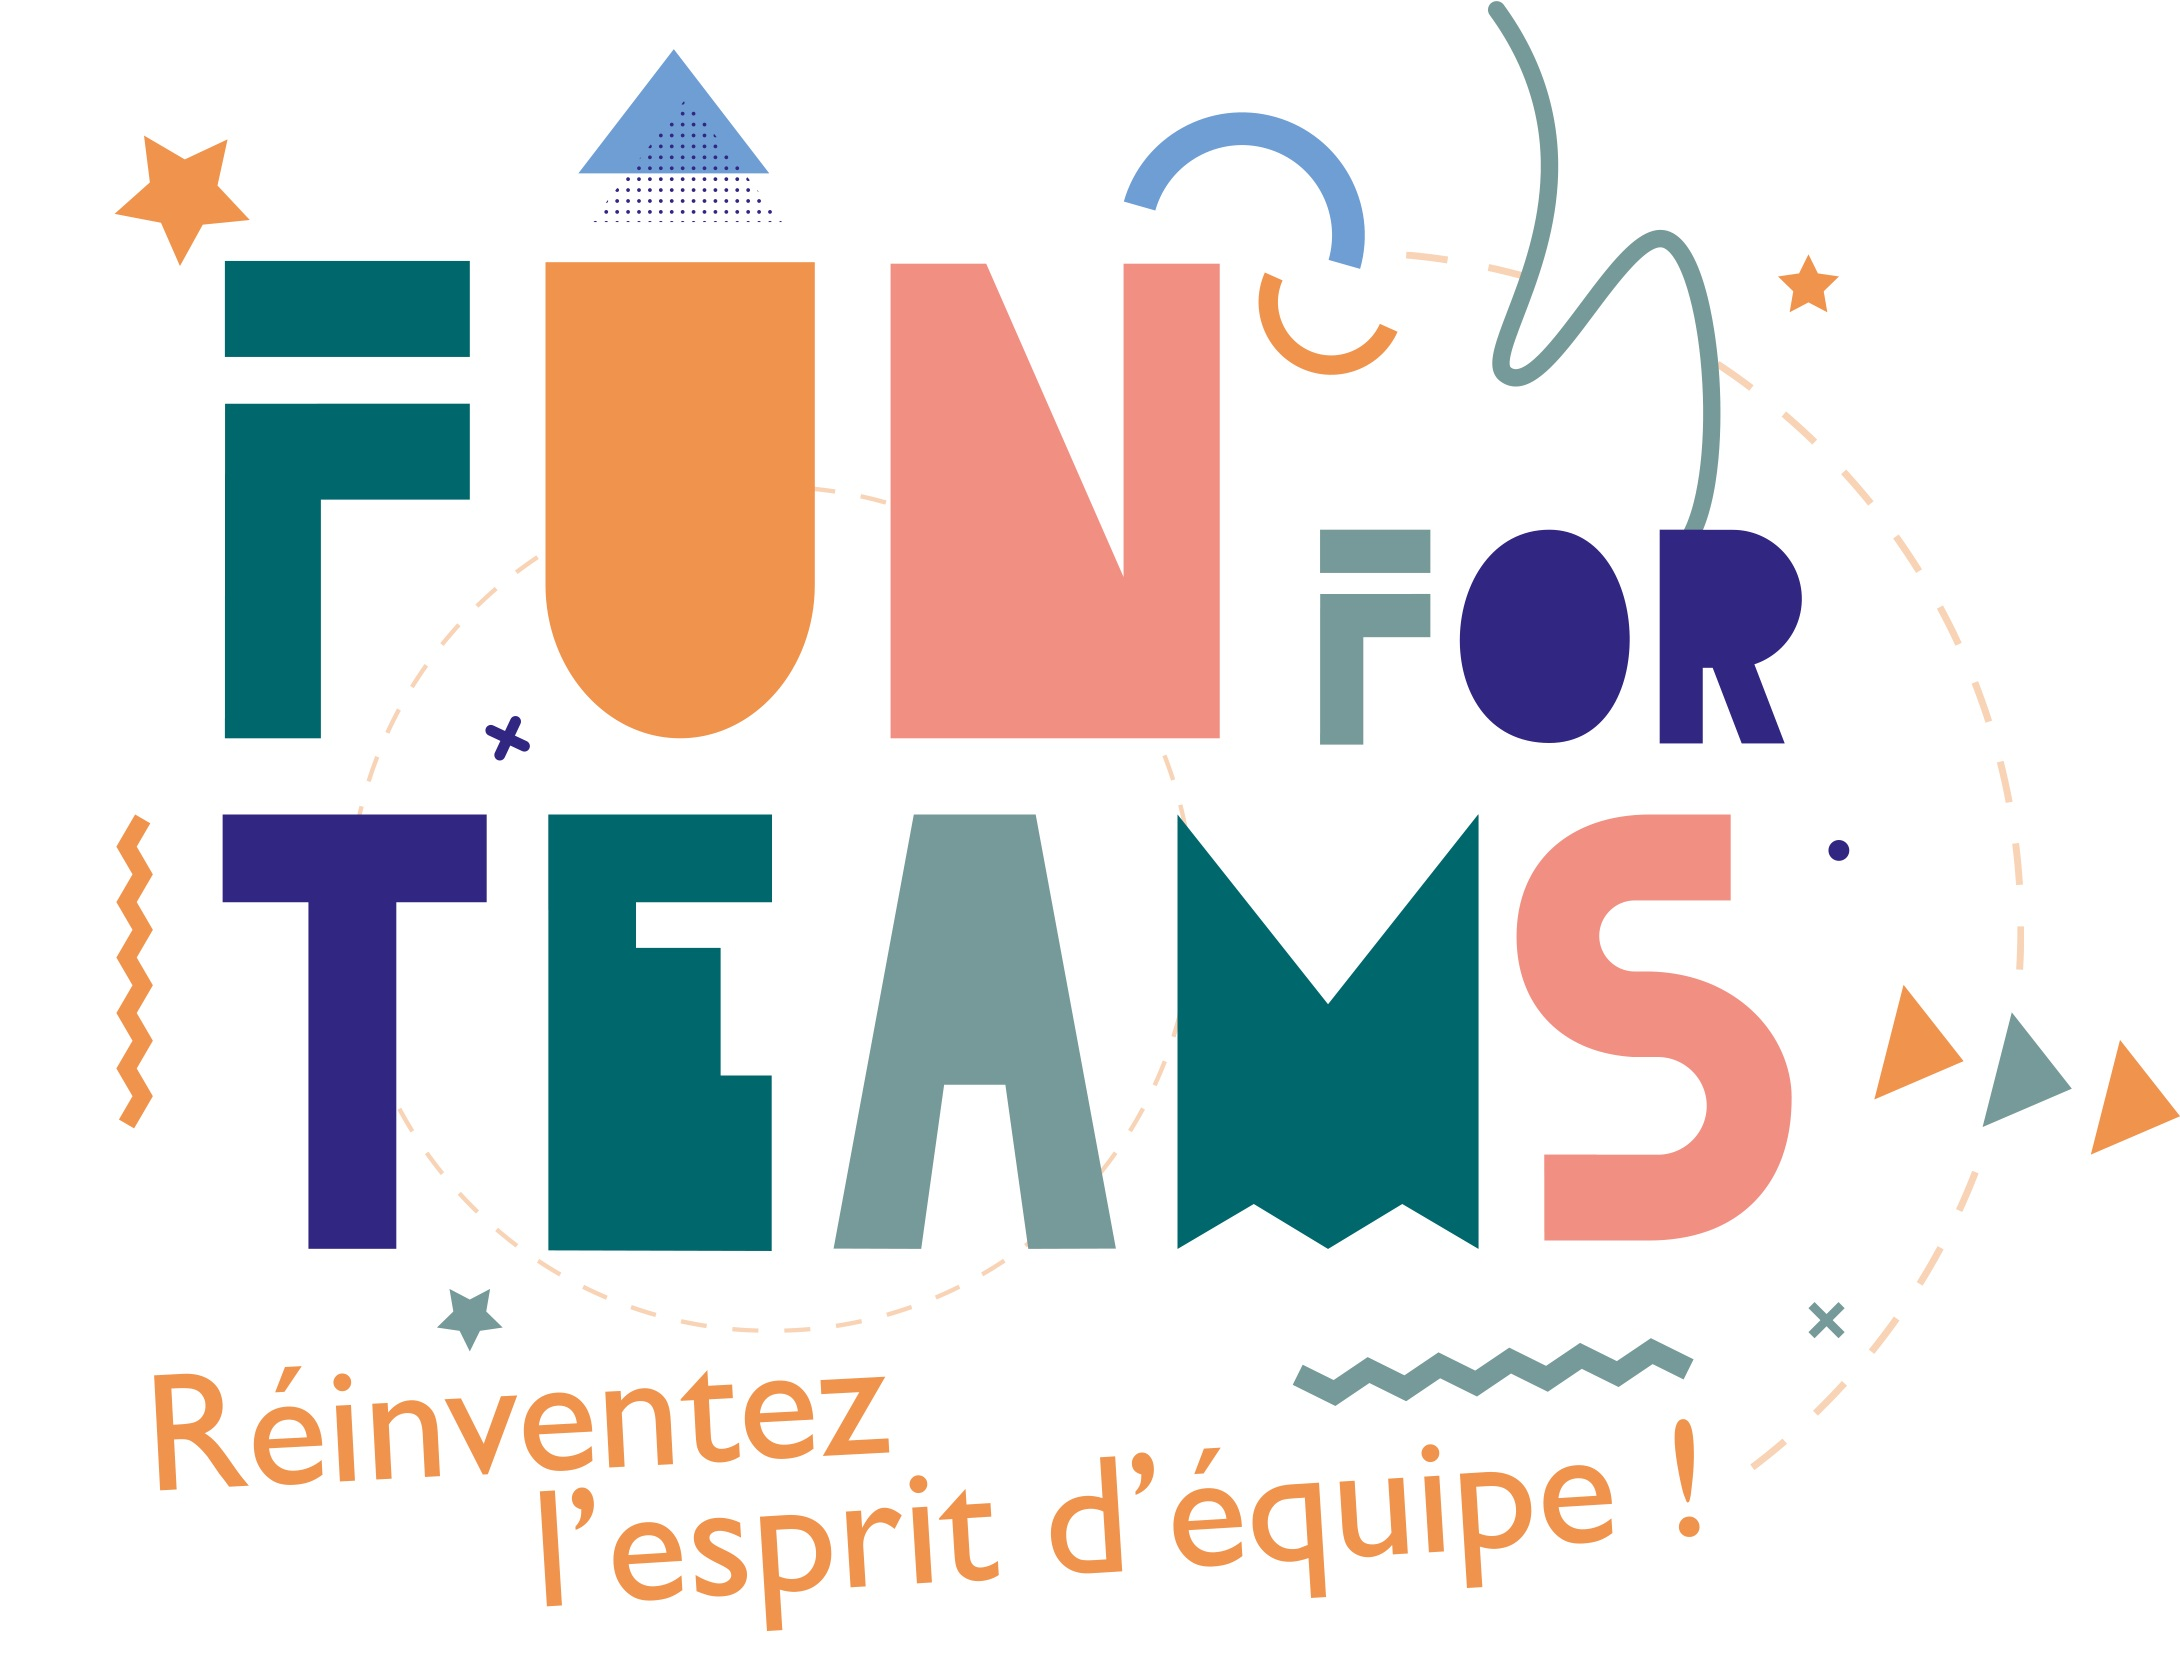 Formules Fun - Visuel de référence de la formule Fun for Teams du Panorama XXL